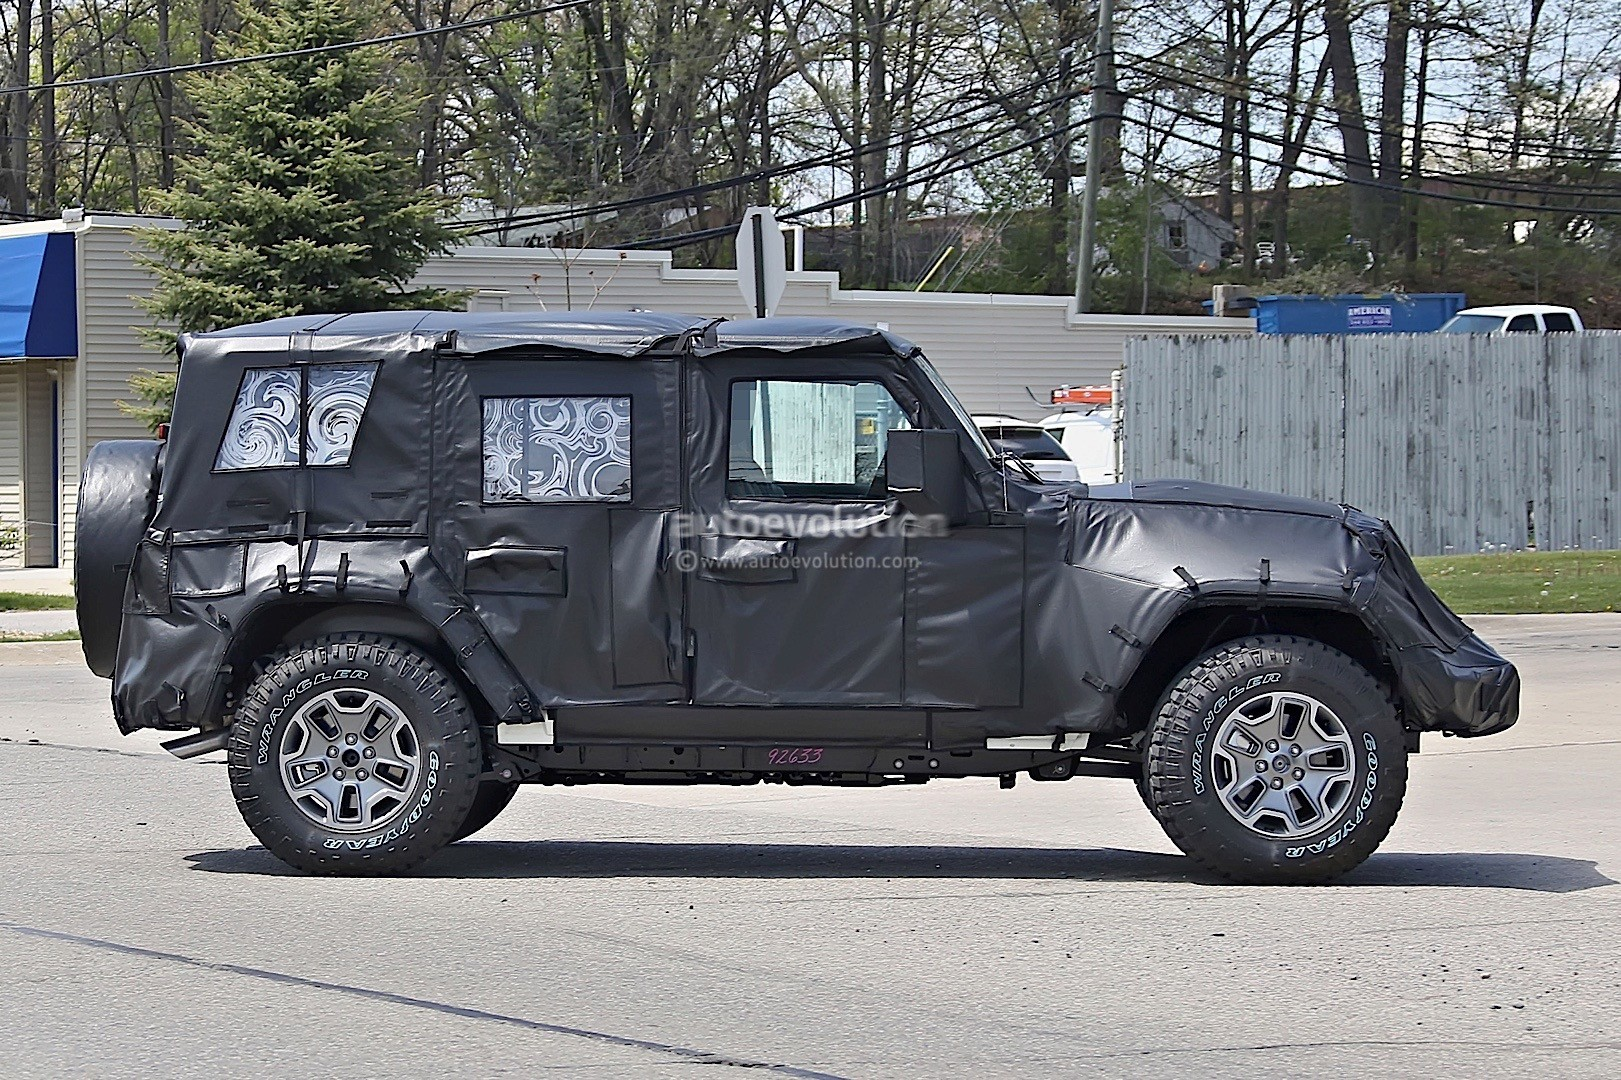 Jeep Ceo Confirms 2018 Jeep Wrangler Jl Will Be Boxy Water Is Rh  Autoevolution Com 2007 Jeep Wrangler 6 Speed Manual Transmission Fluid  Chrysler 6 Speed ...